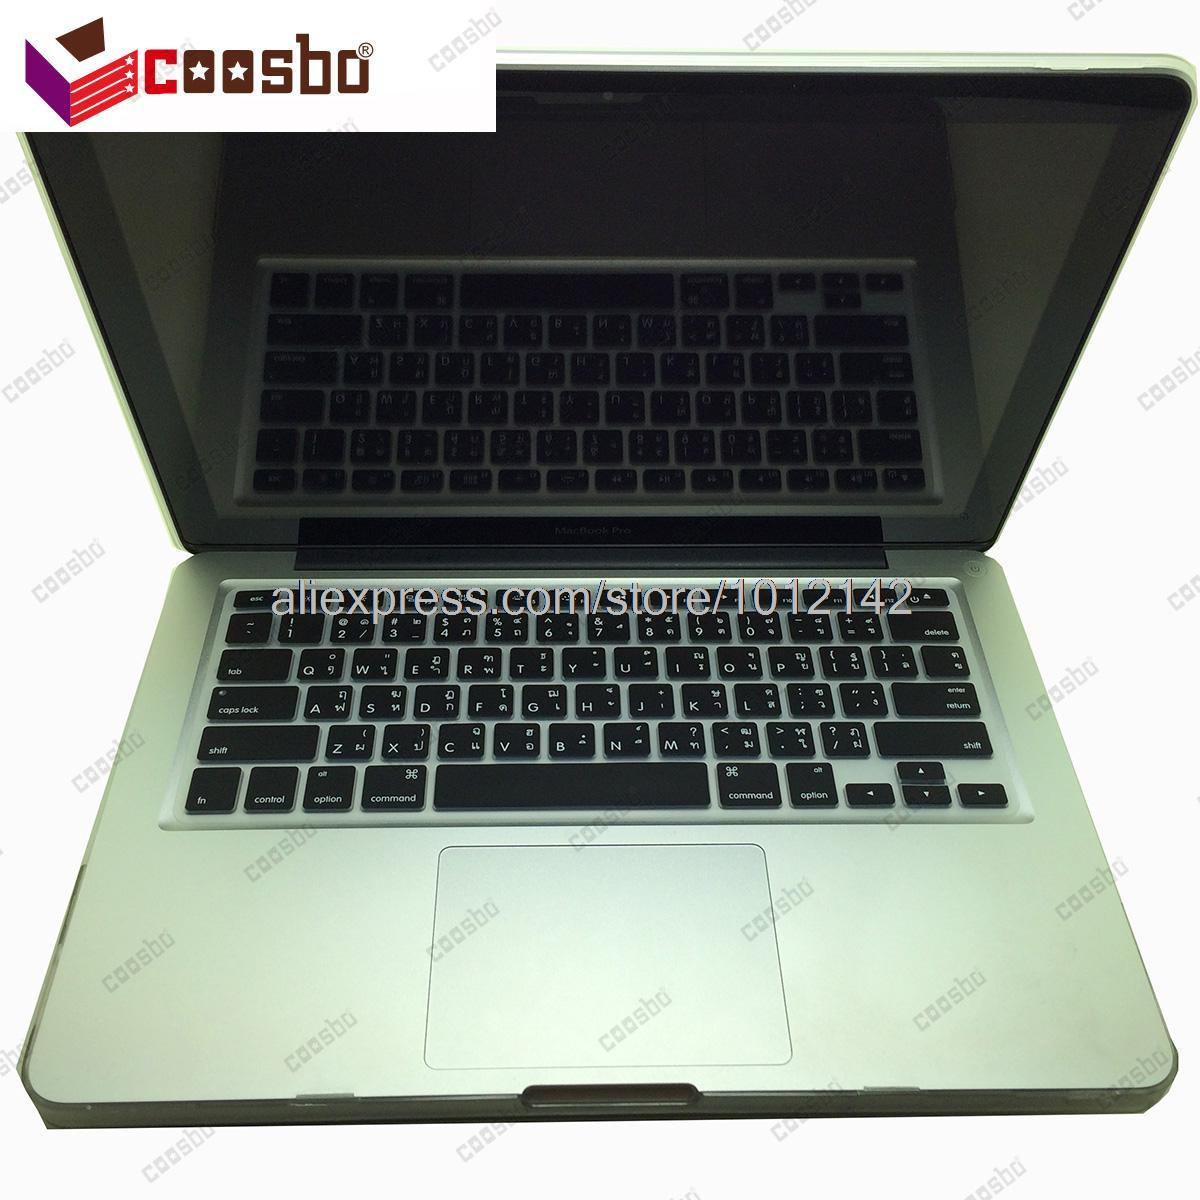 New 50pcs Wholesale lower price Thailand Thai Colors Keyboard Skin Protector Cover for Mac Macbook Air Pro Retina / G6 13 15 17 зарядное устройство для шуруповерта wurth master купить в москве